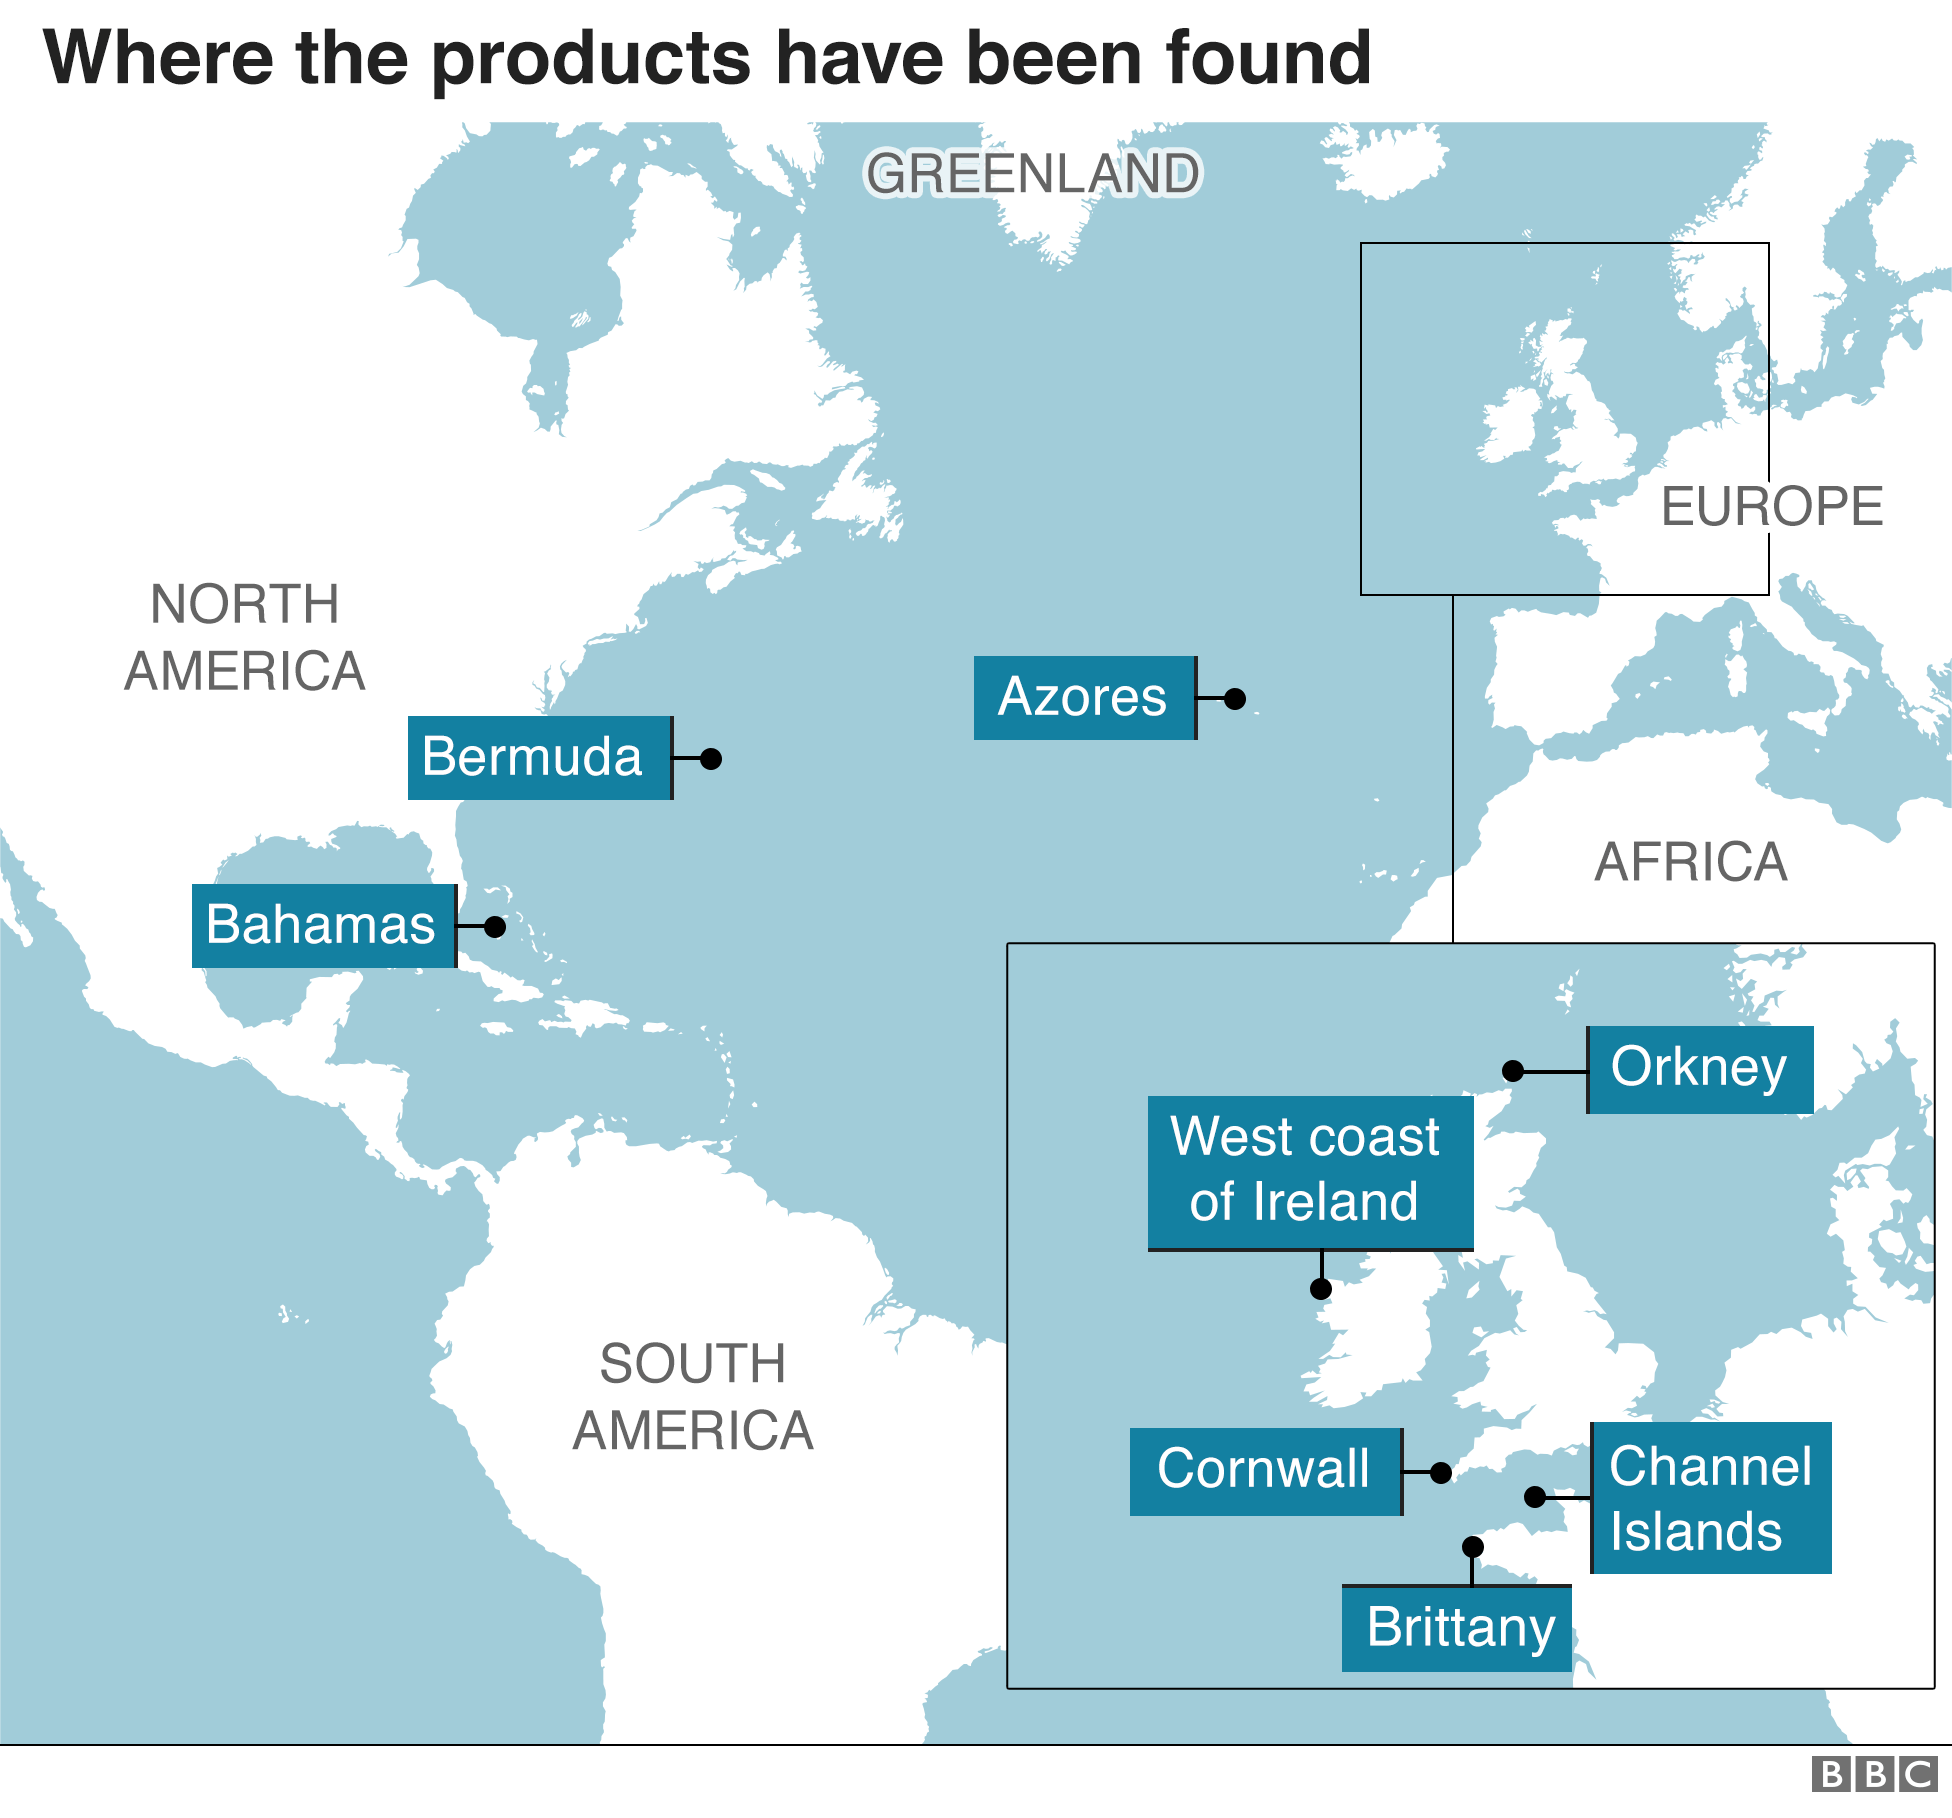 Map showing where the products have been found.